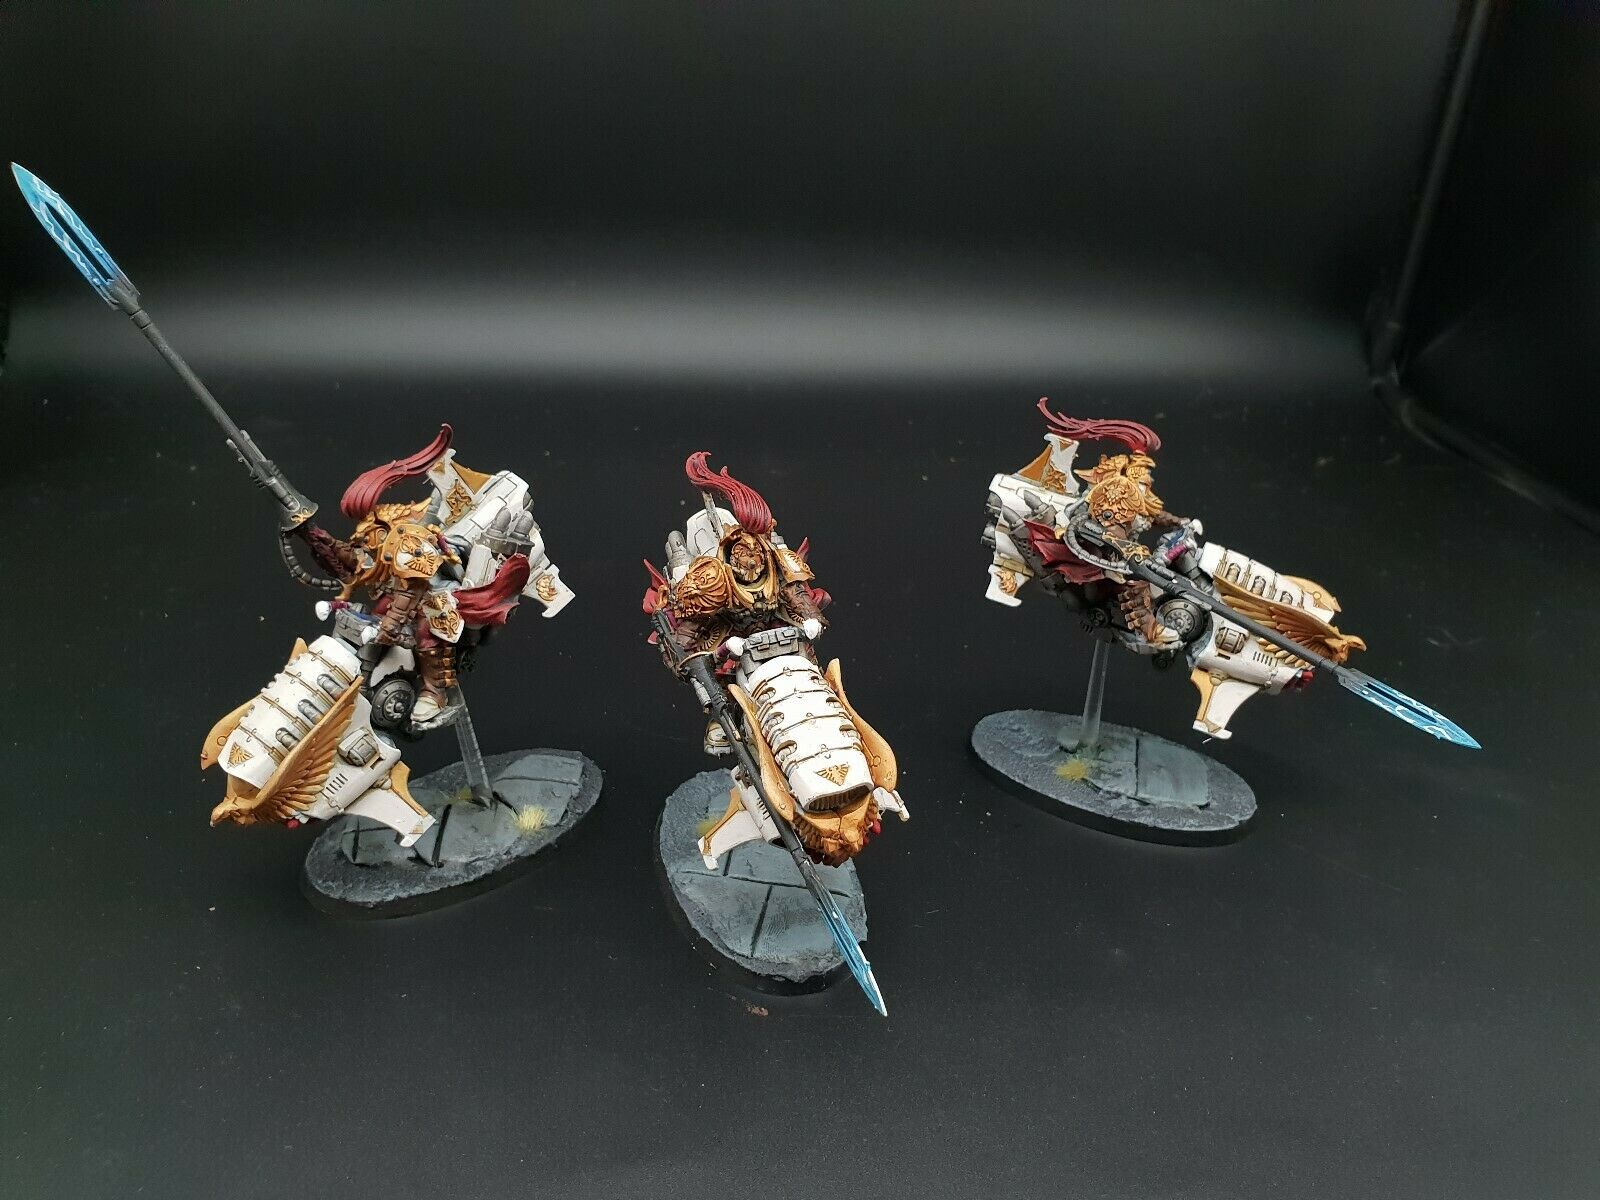 Warhammer 40k solar watch custodes Jet bikes pro painted painted painted made to order ee1a98